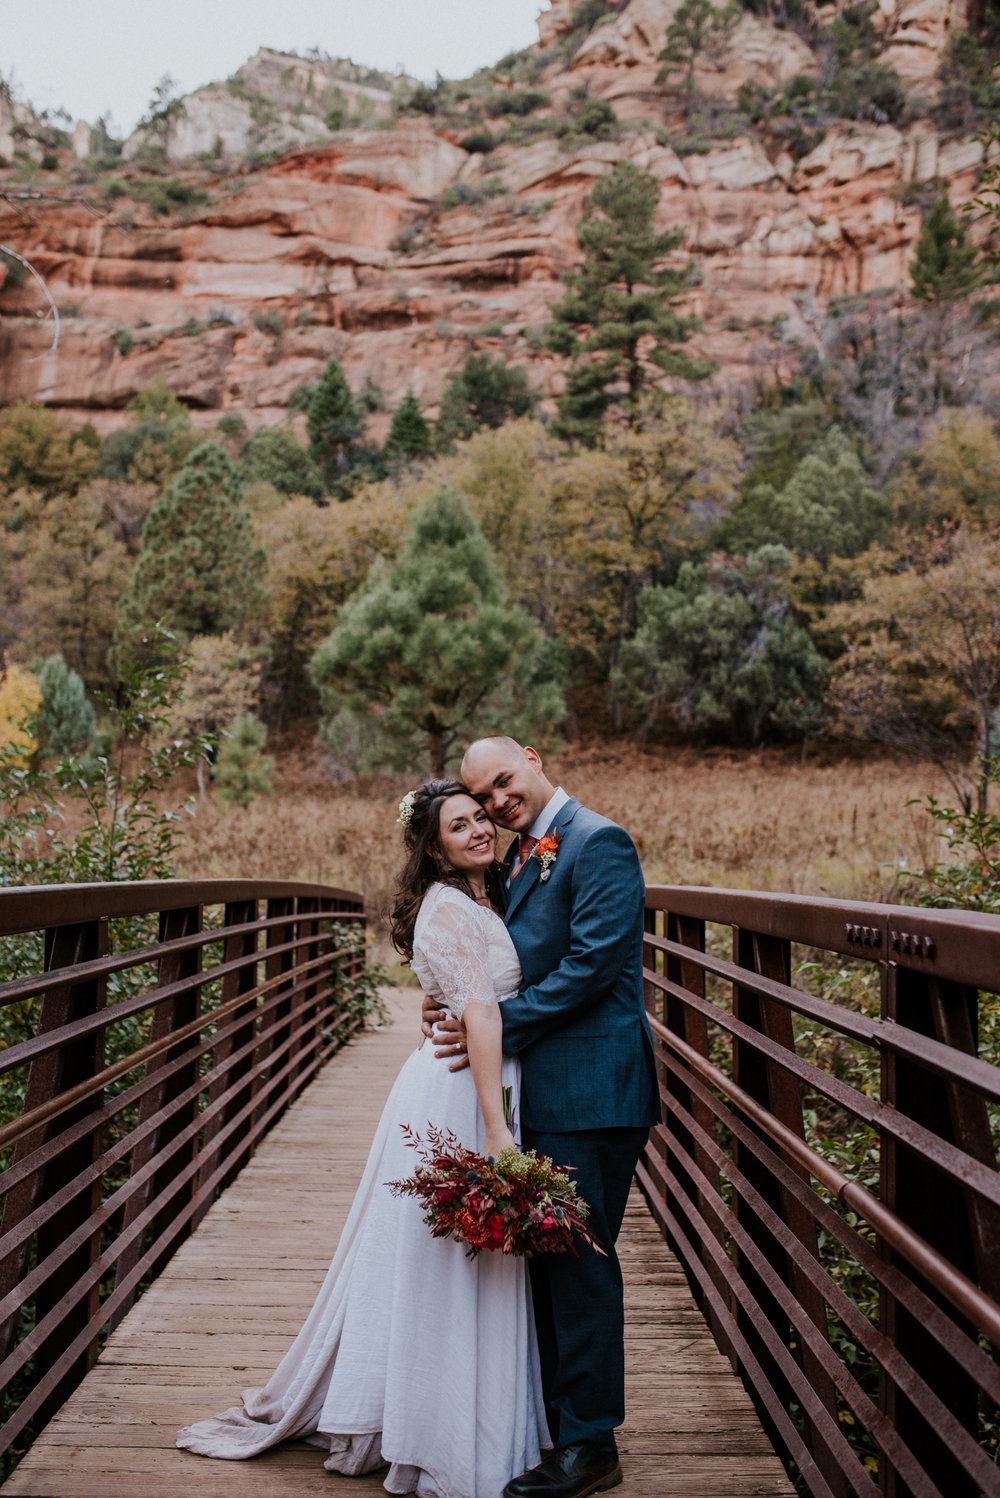 Intimate Adventure Fall Sedona Elopement-72.jpg